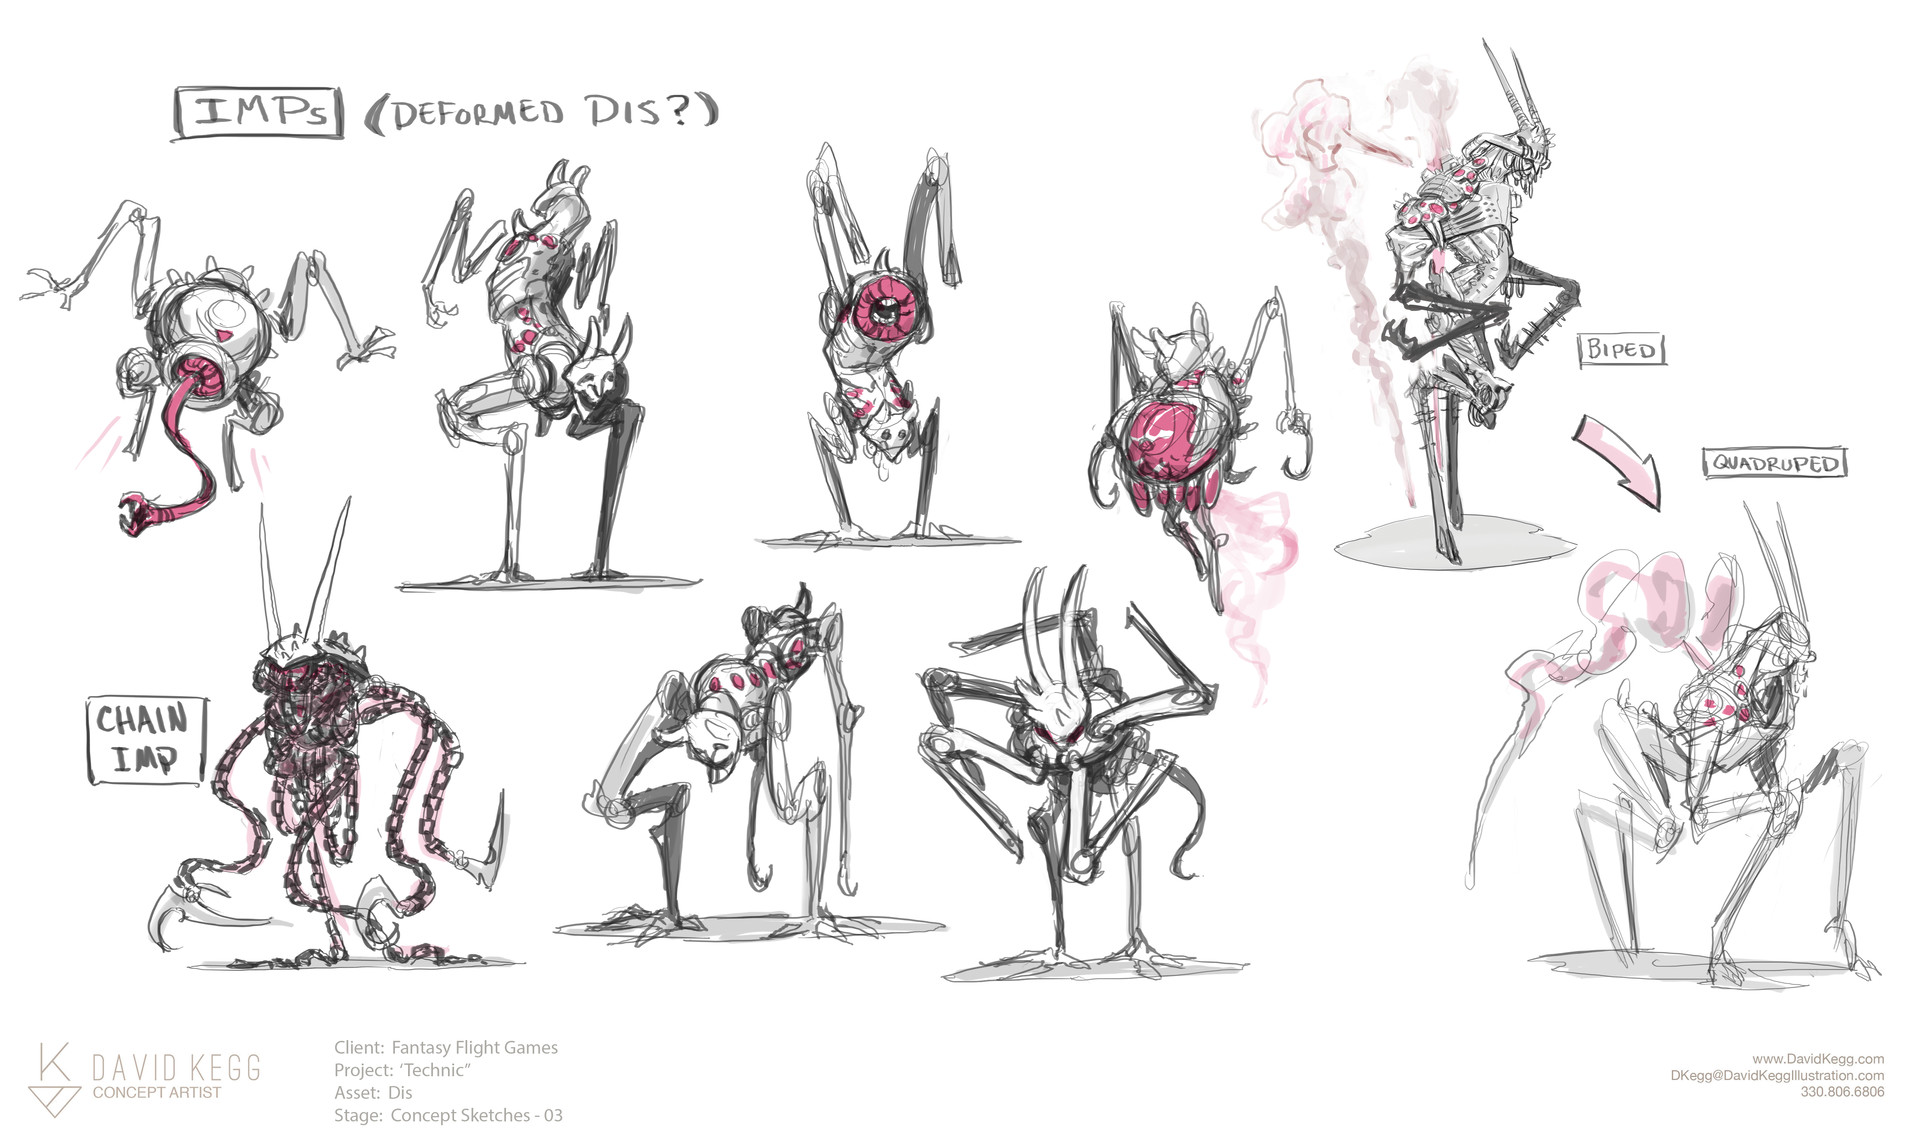 David kegg kegg ffgtechnic dis conceptsketches 03